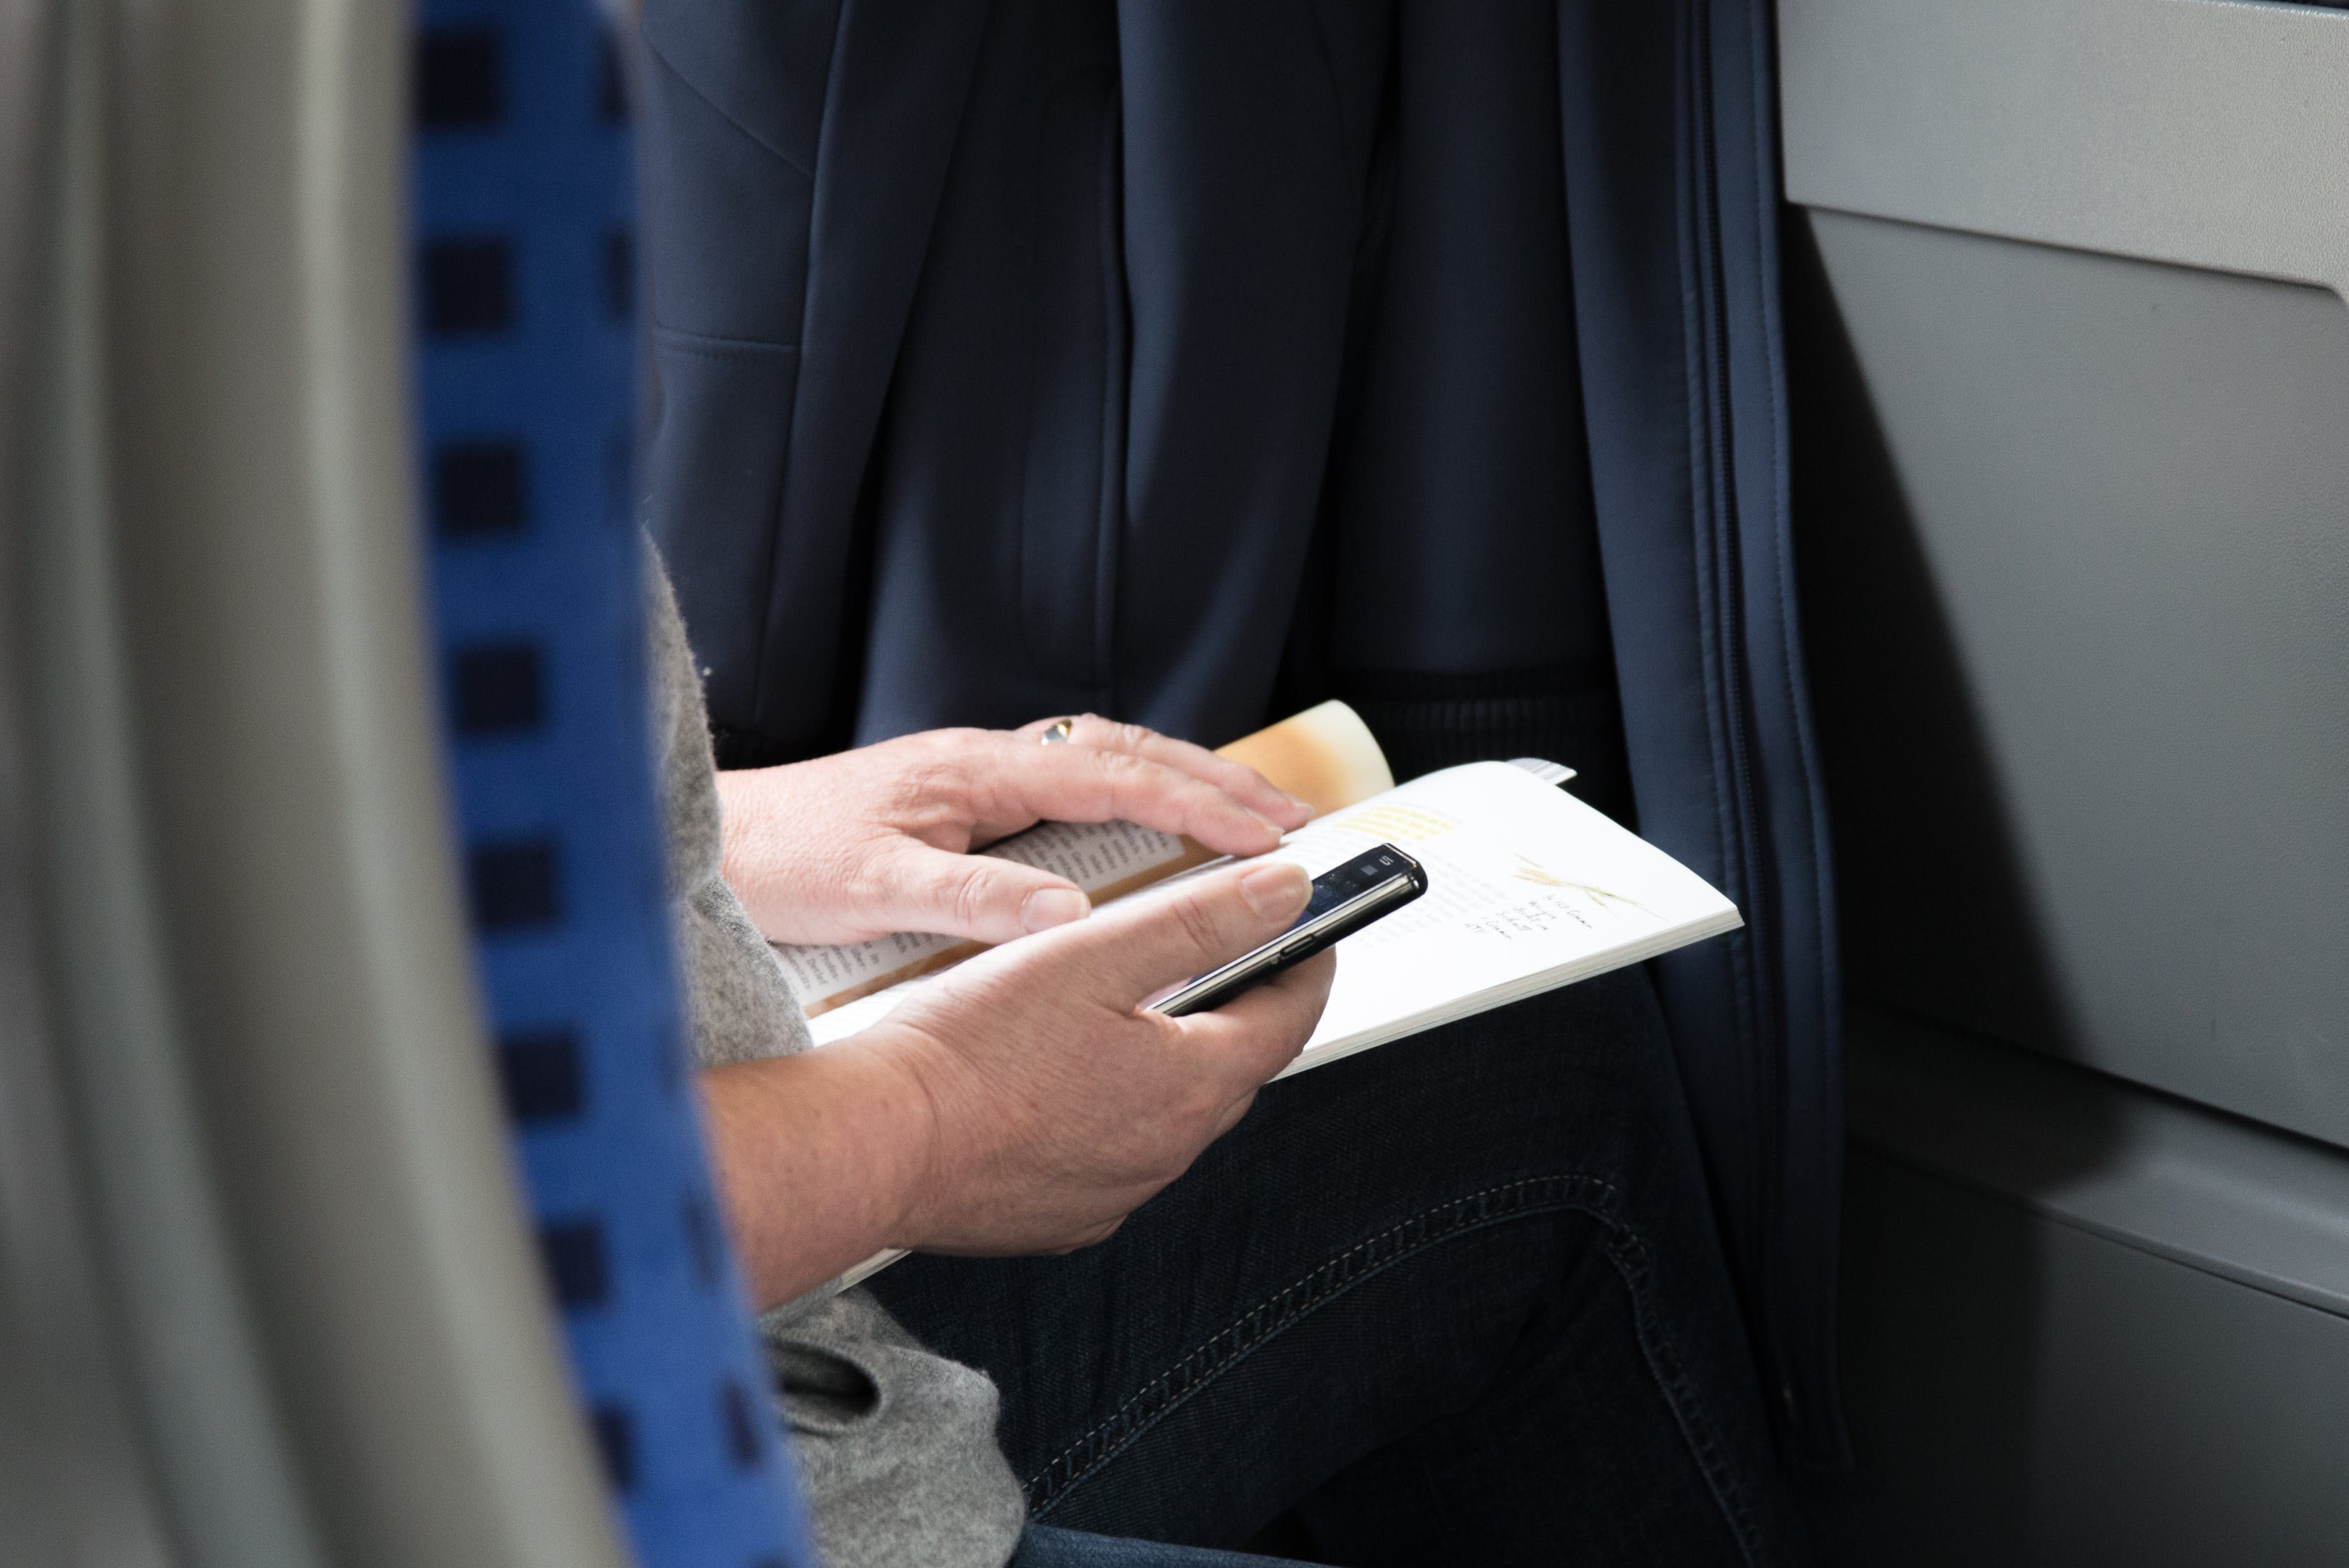 Person in Gray Shirt Holding Black Smartphone and Brown Book